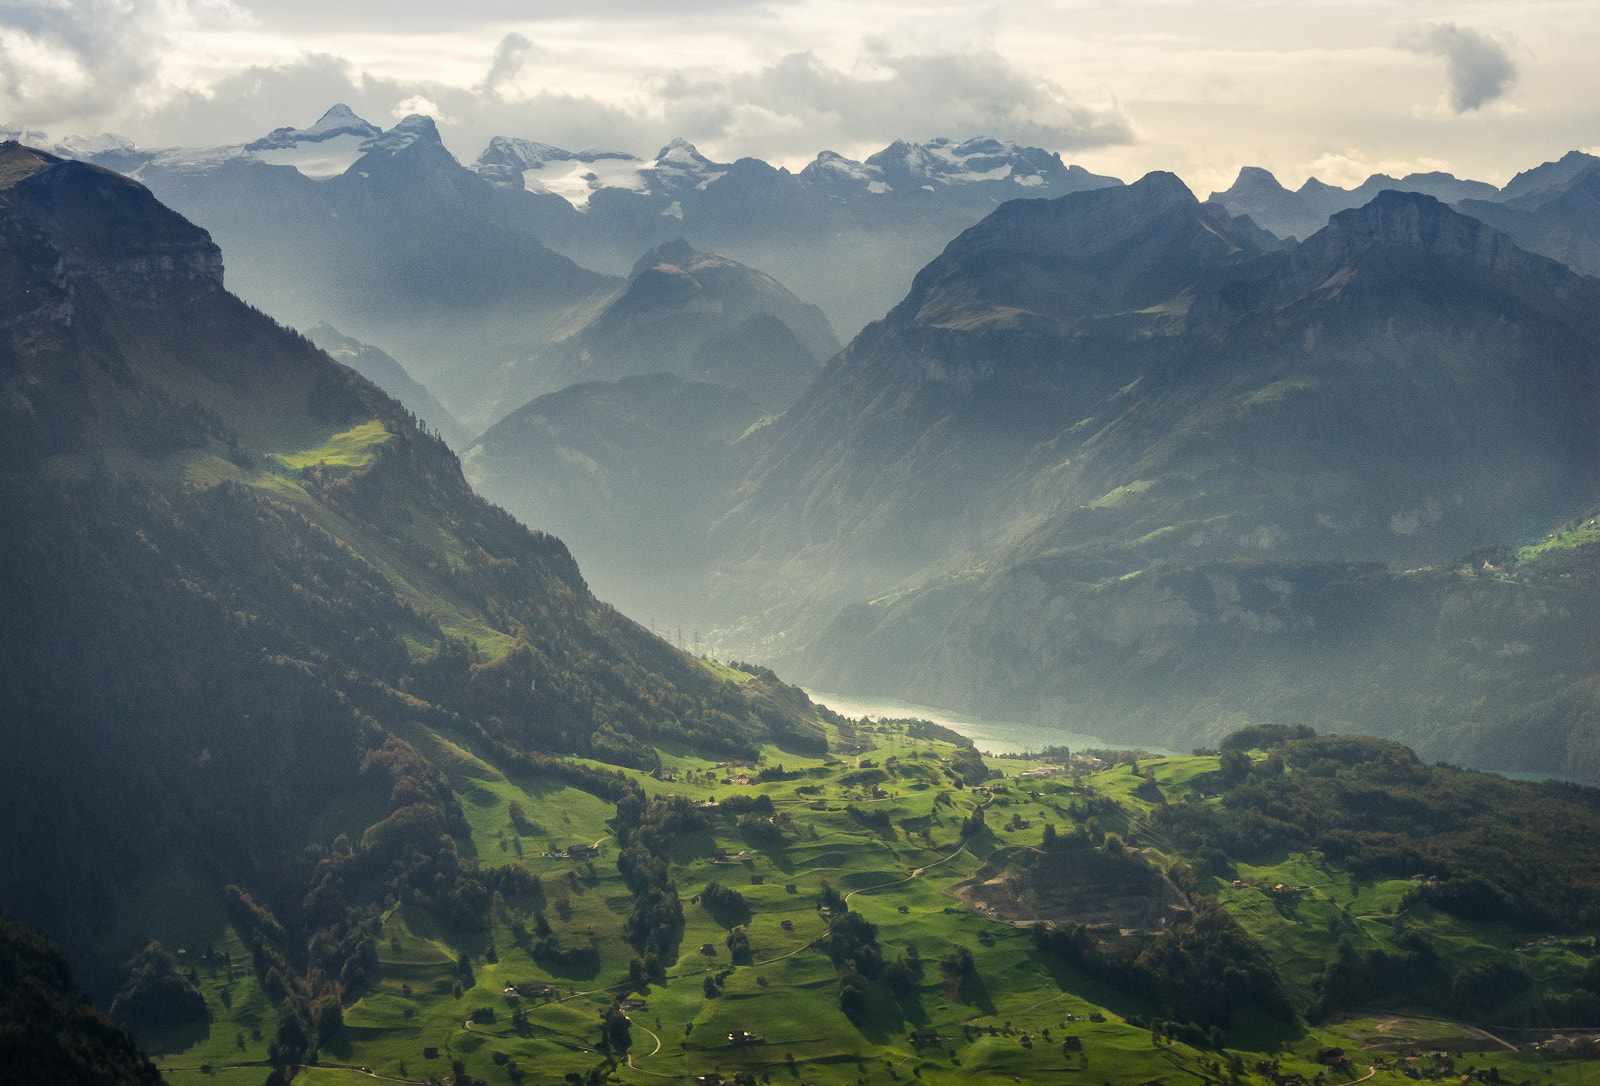 Photograph Mythen by Tobias Gass on 500px